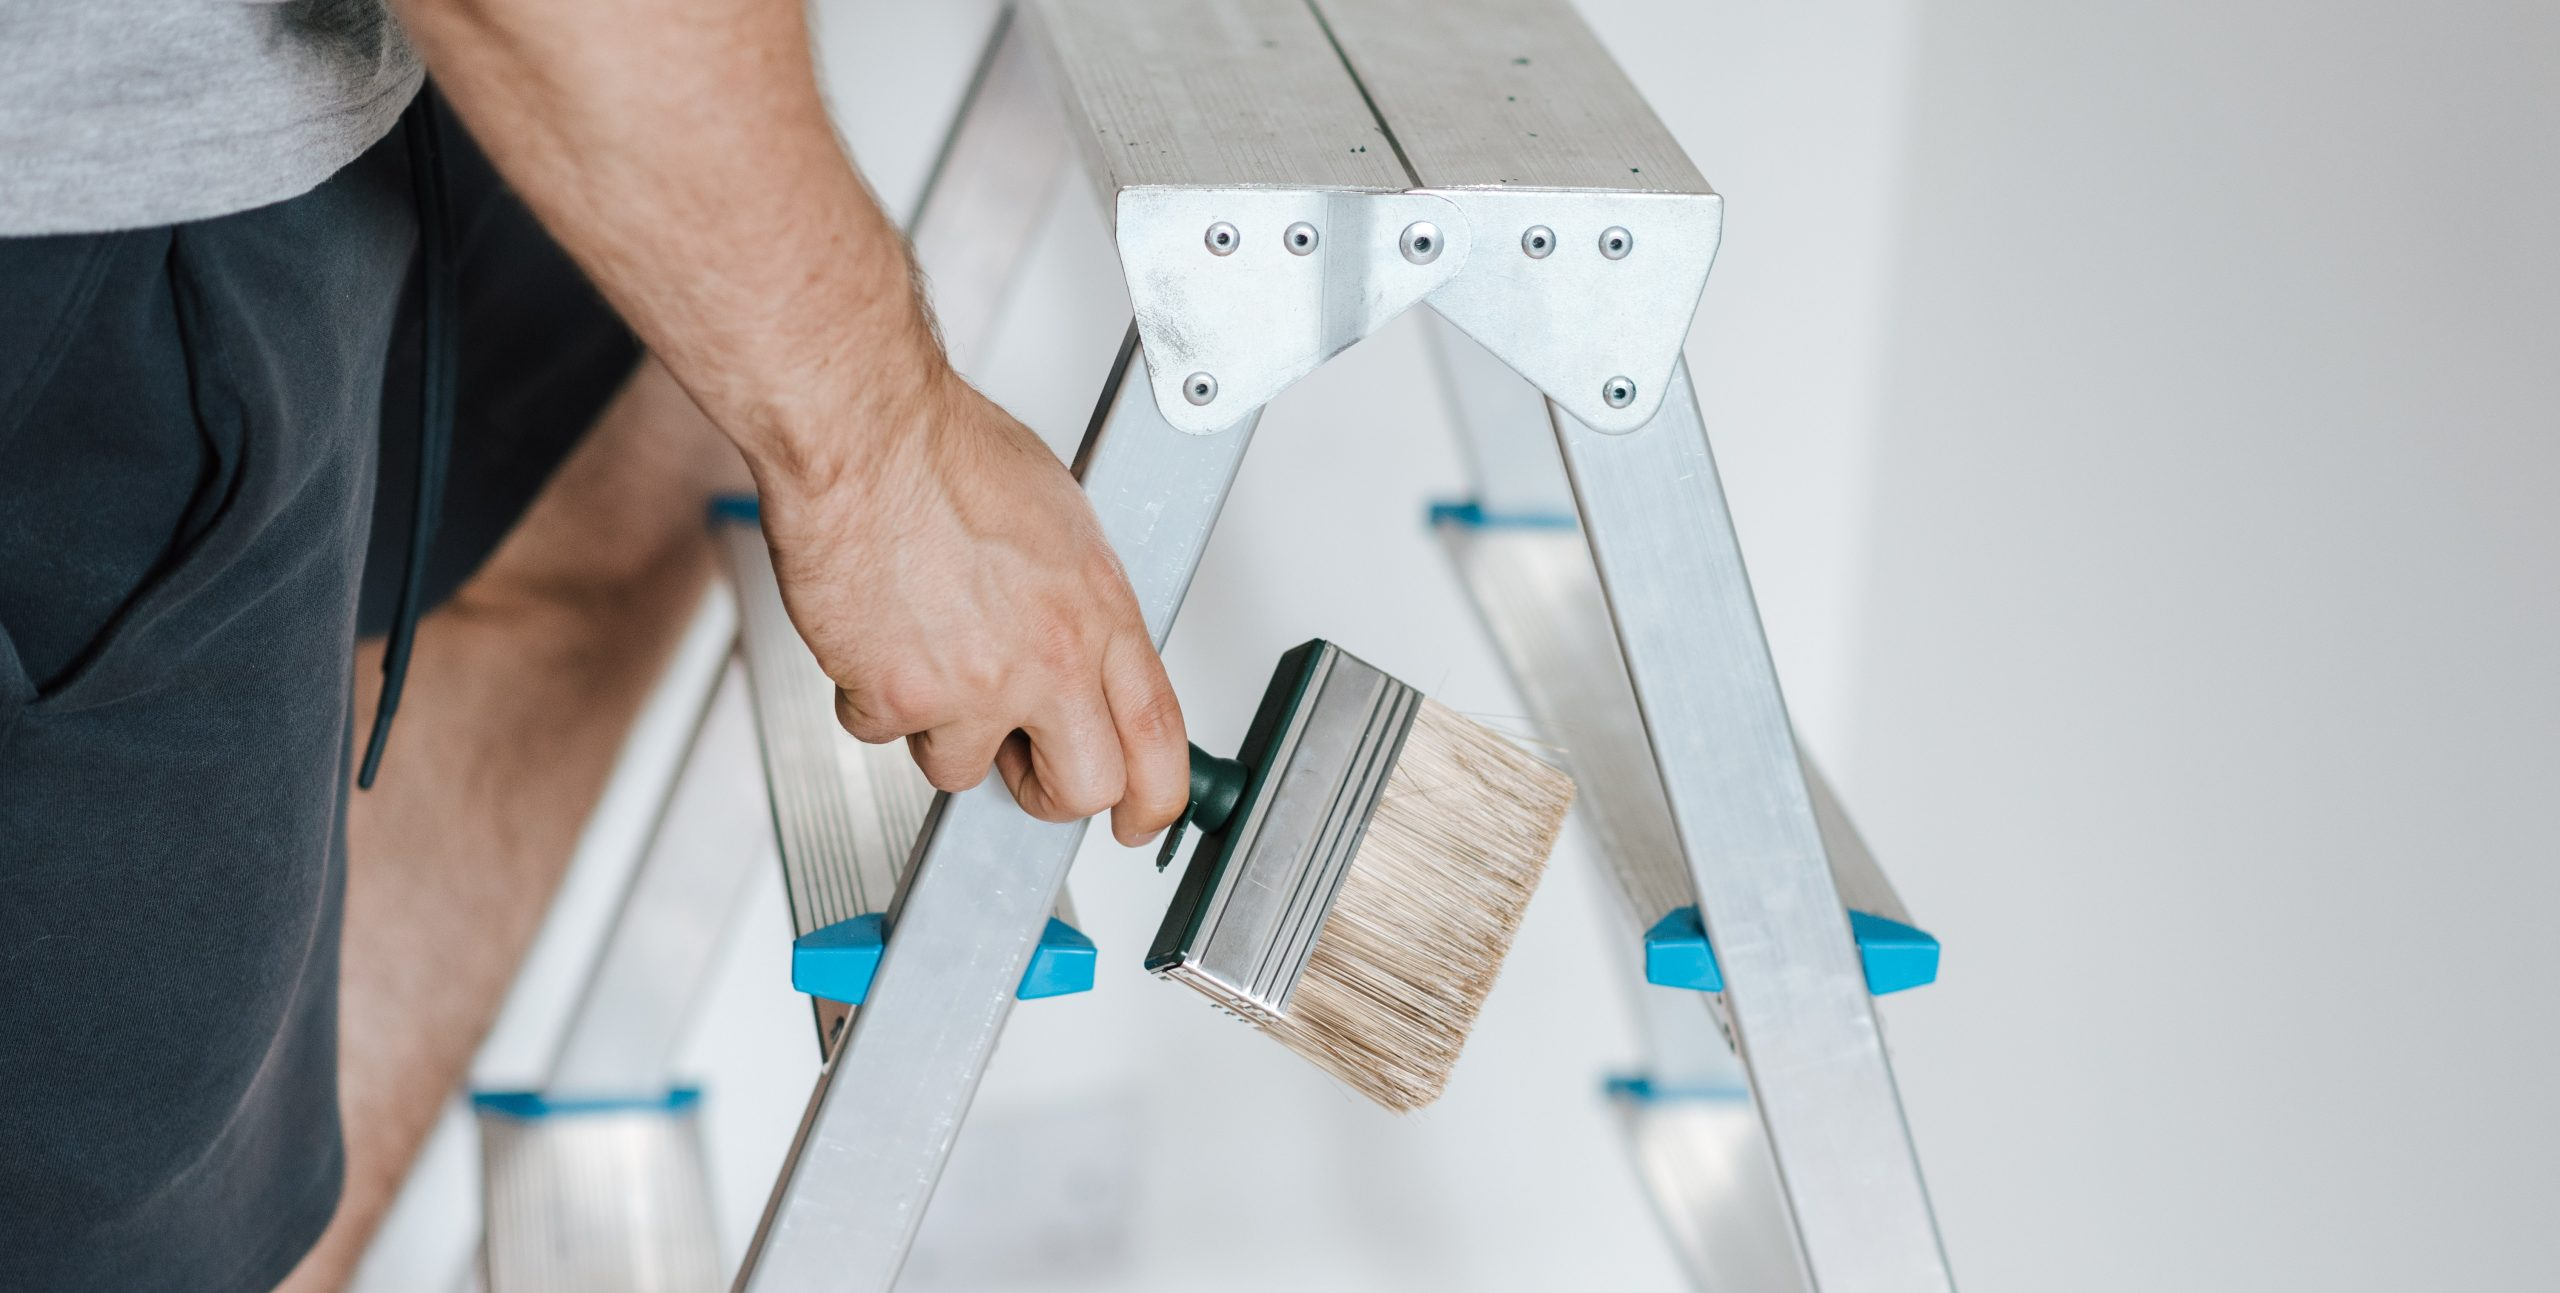 Can renovations considerably increase the rent?